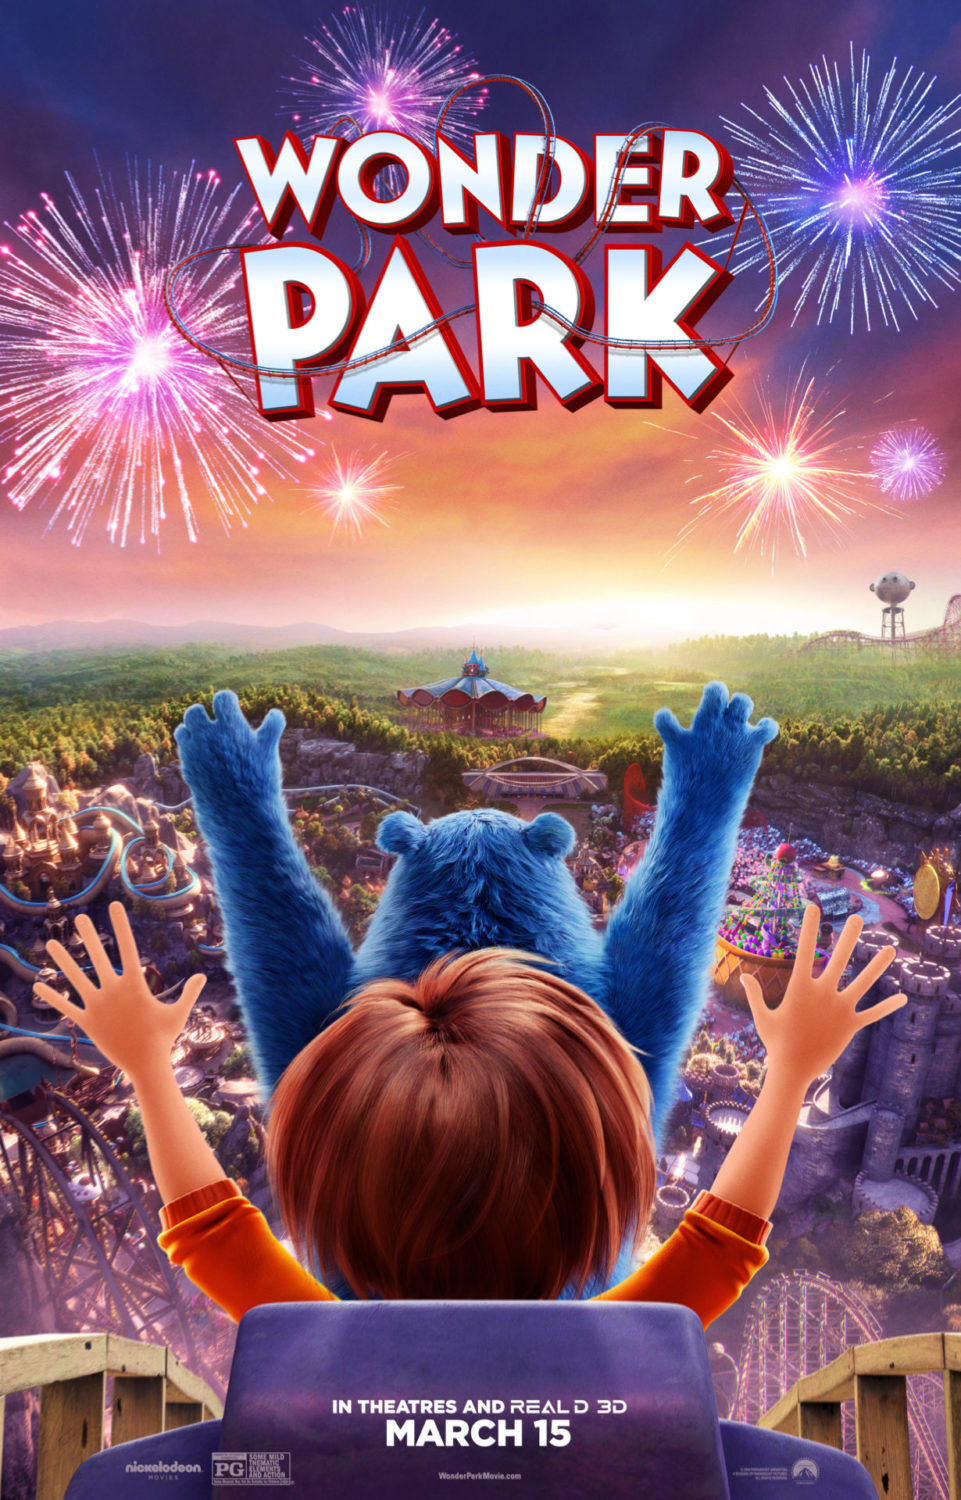 Wonder Park Coming March 15th Enter the Giveaway 1